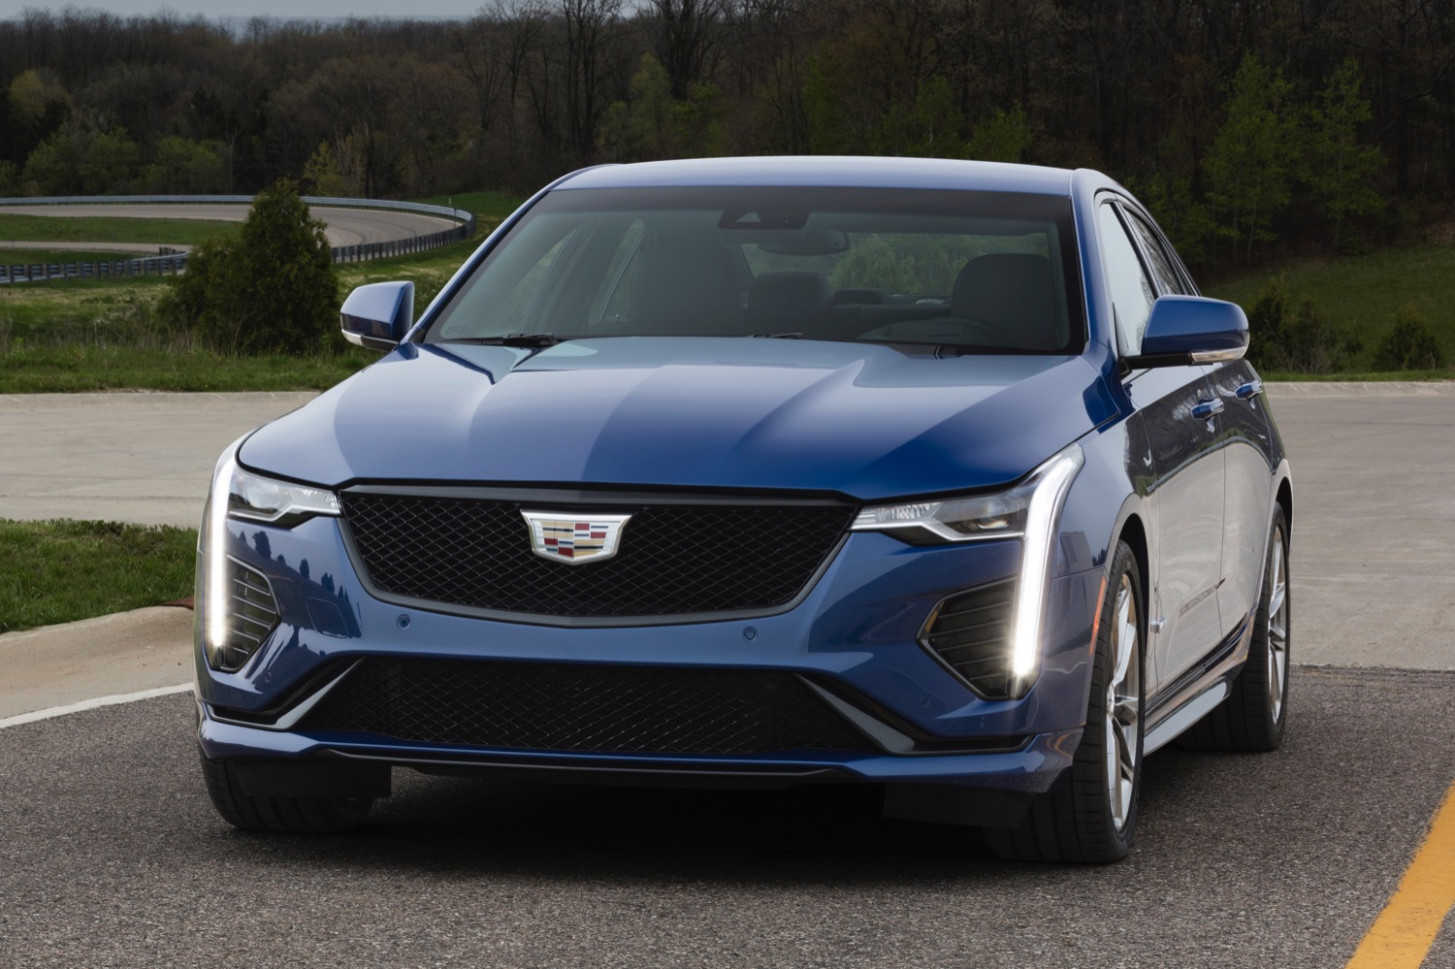 Overview Cadillac Ct5 To Get Super Cruise In 2022